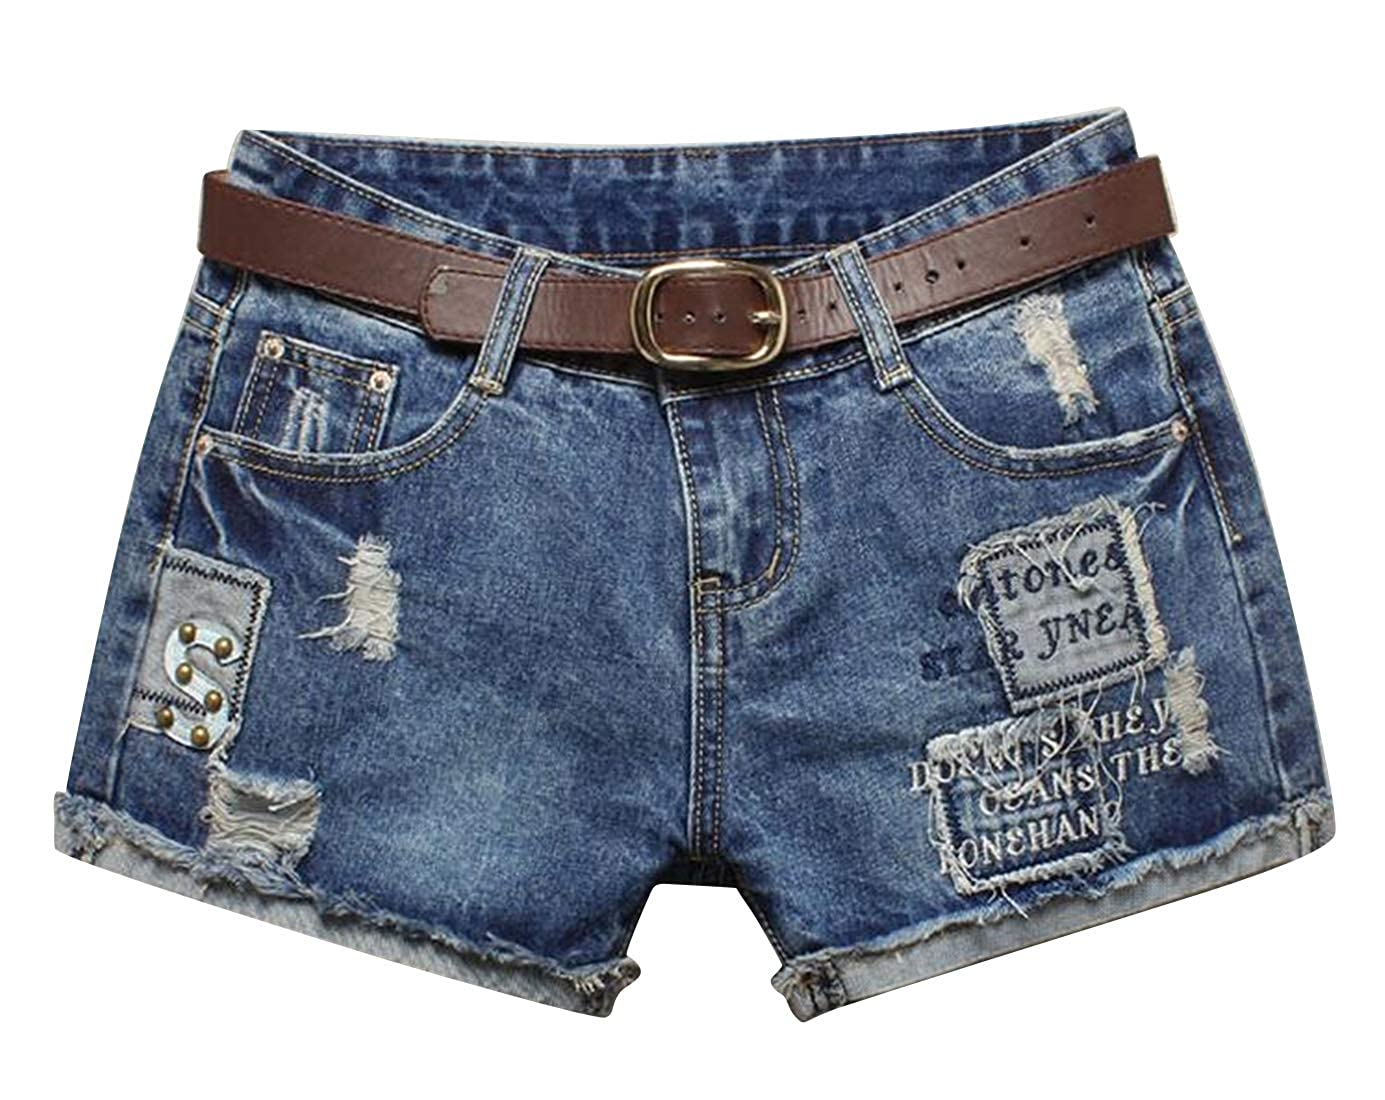 Suncolor8 Womens Summer Low Waisted Belted Ripped Distressed Denim Shorts Jeans Hot Pants